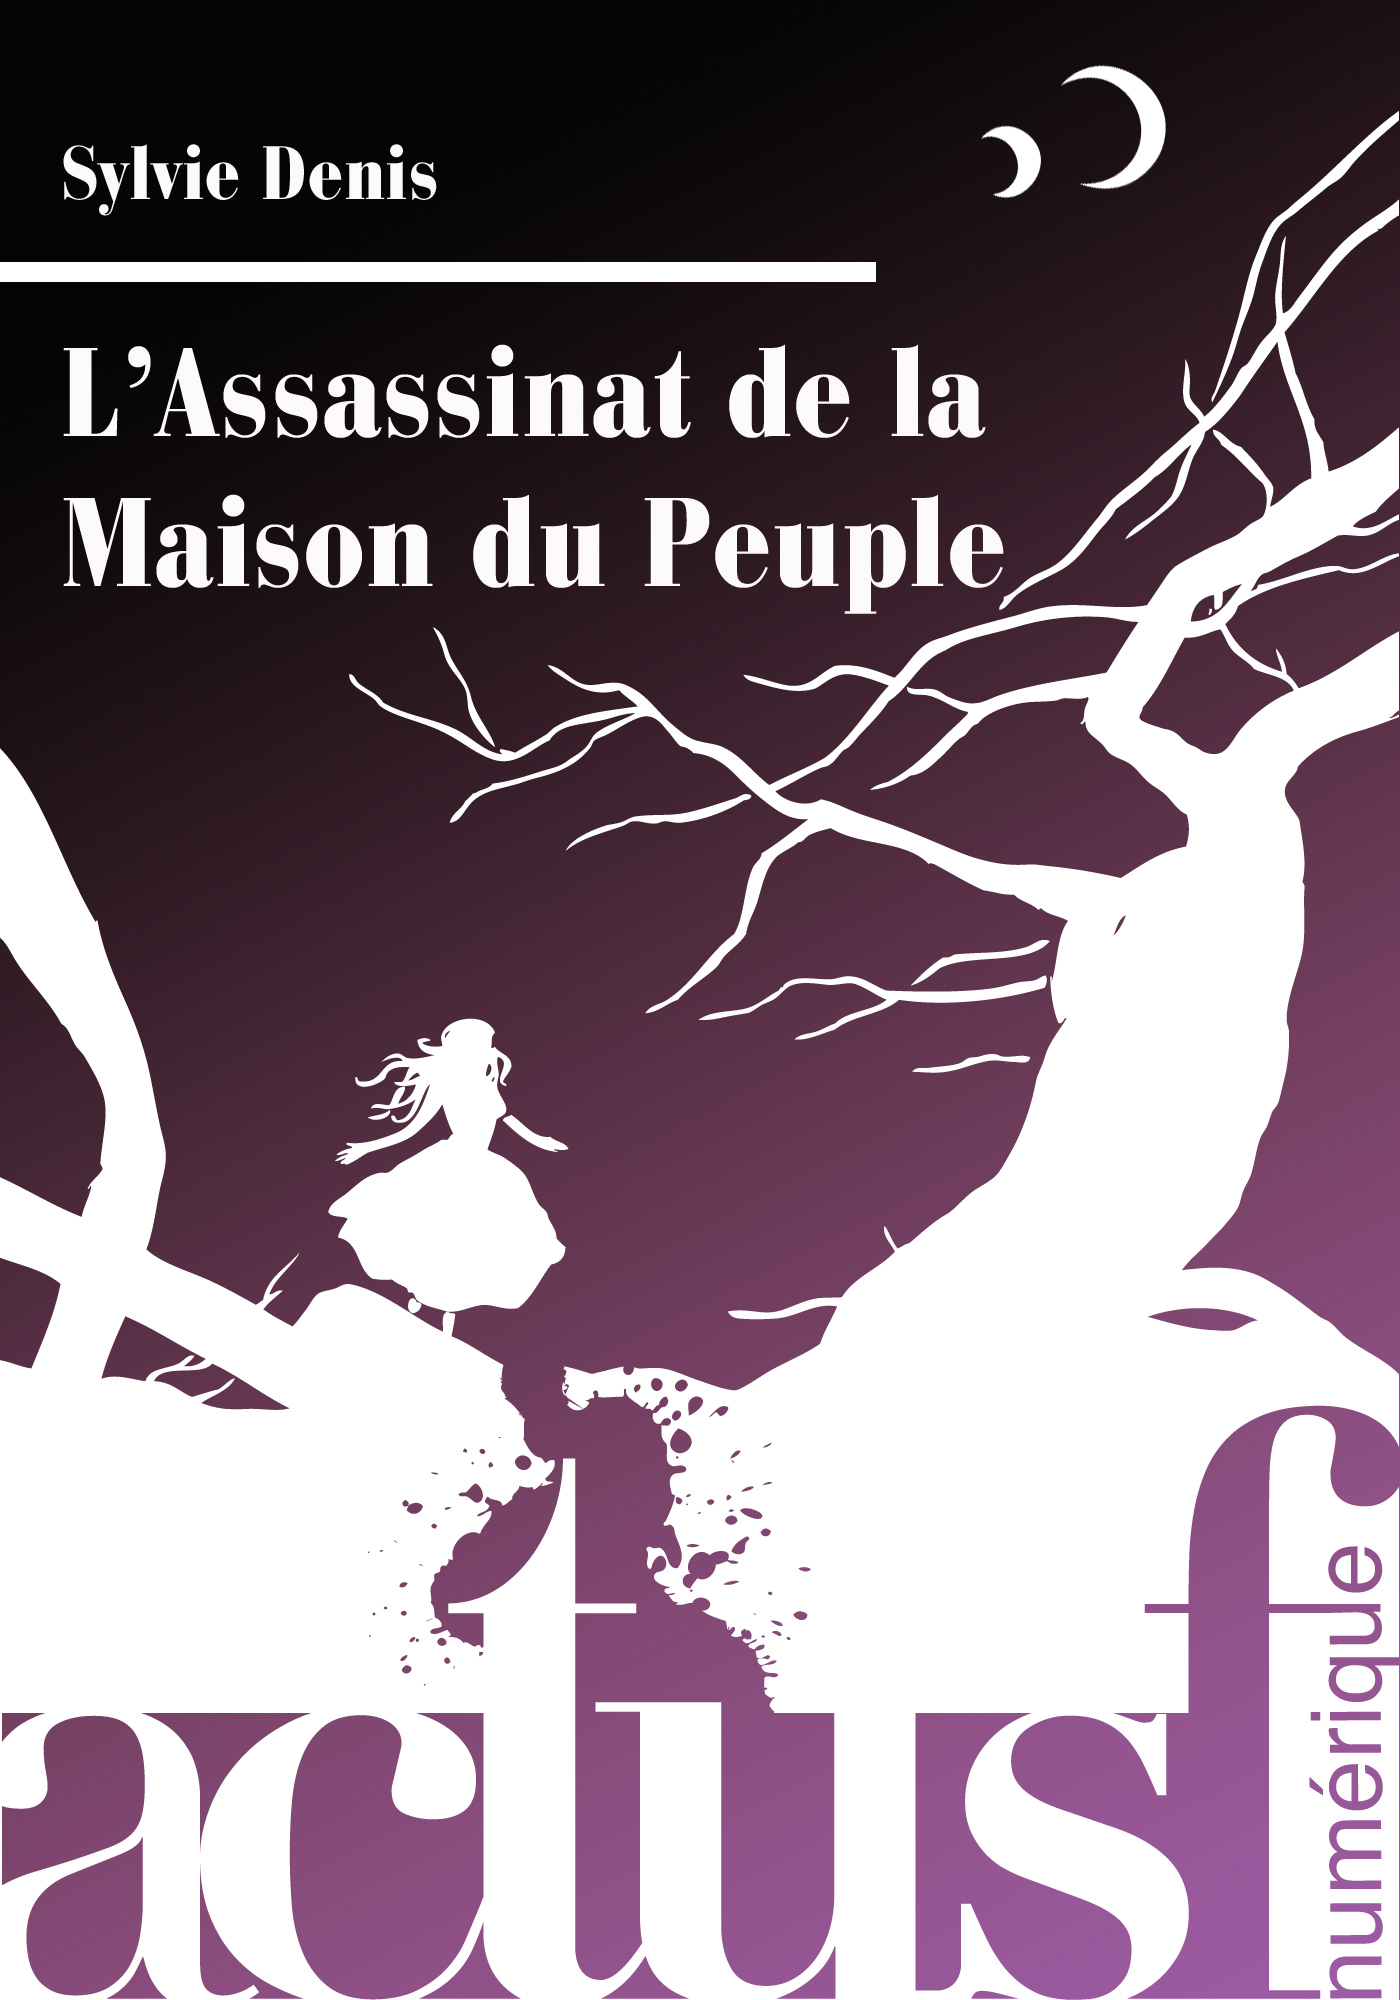 L'assassinat de la maison du peuple